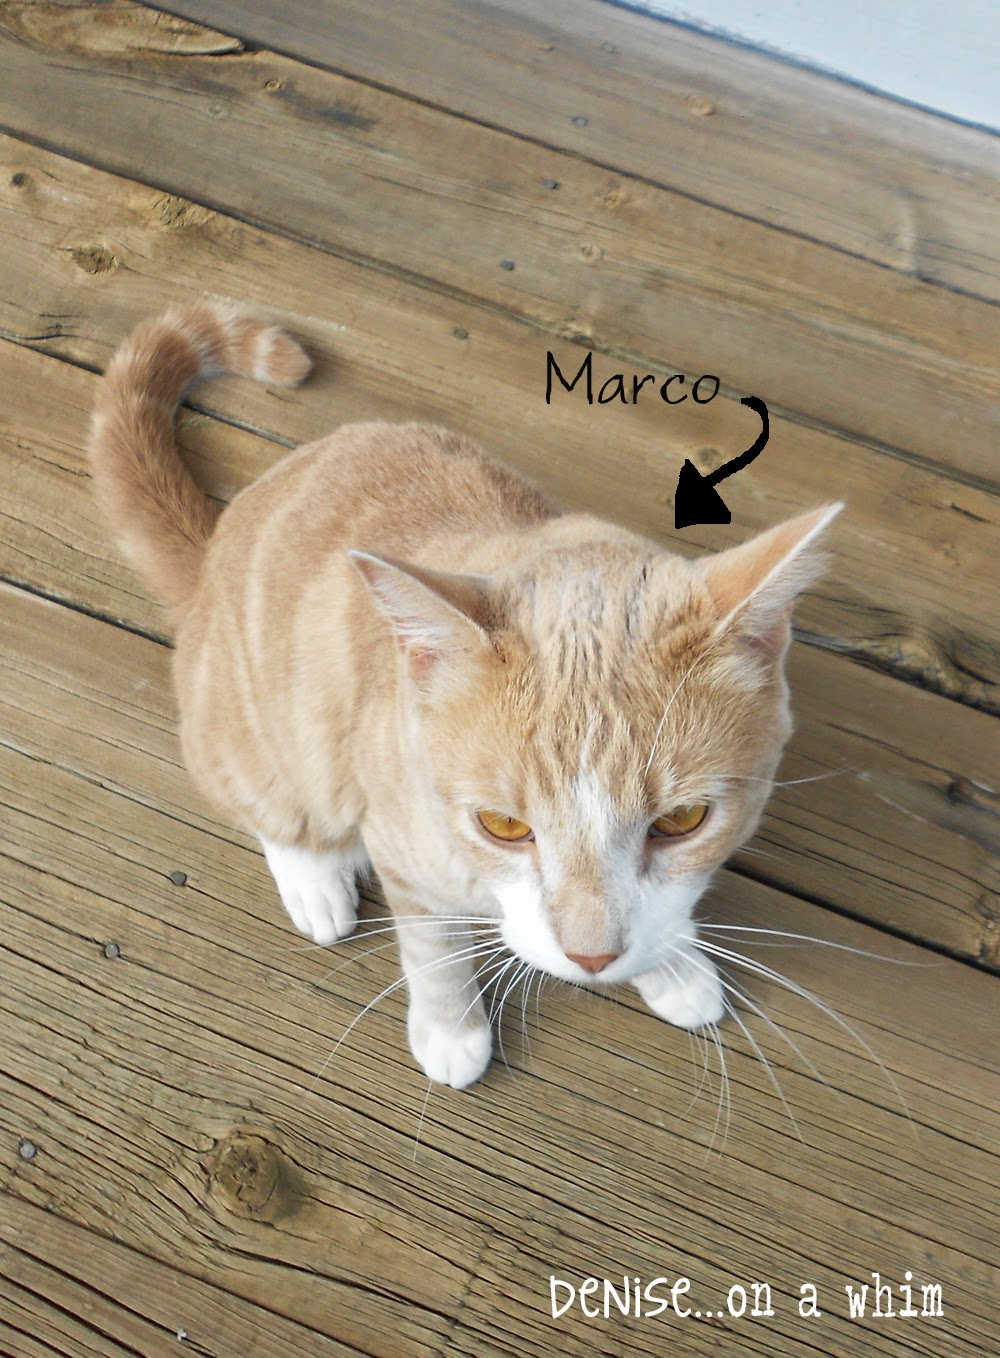 Marco the Cat at Denise on a Whim